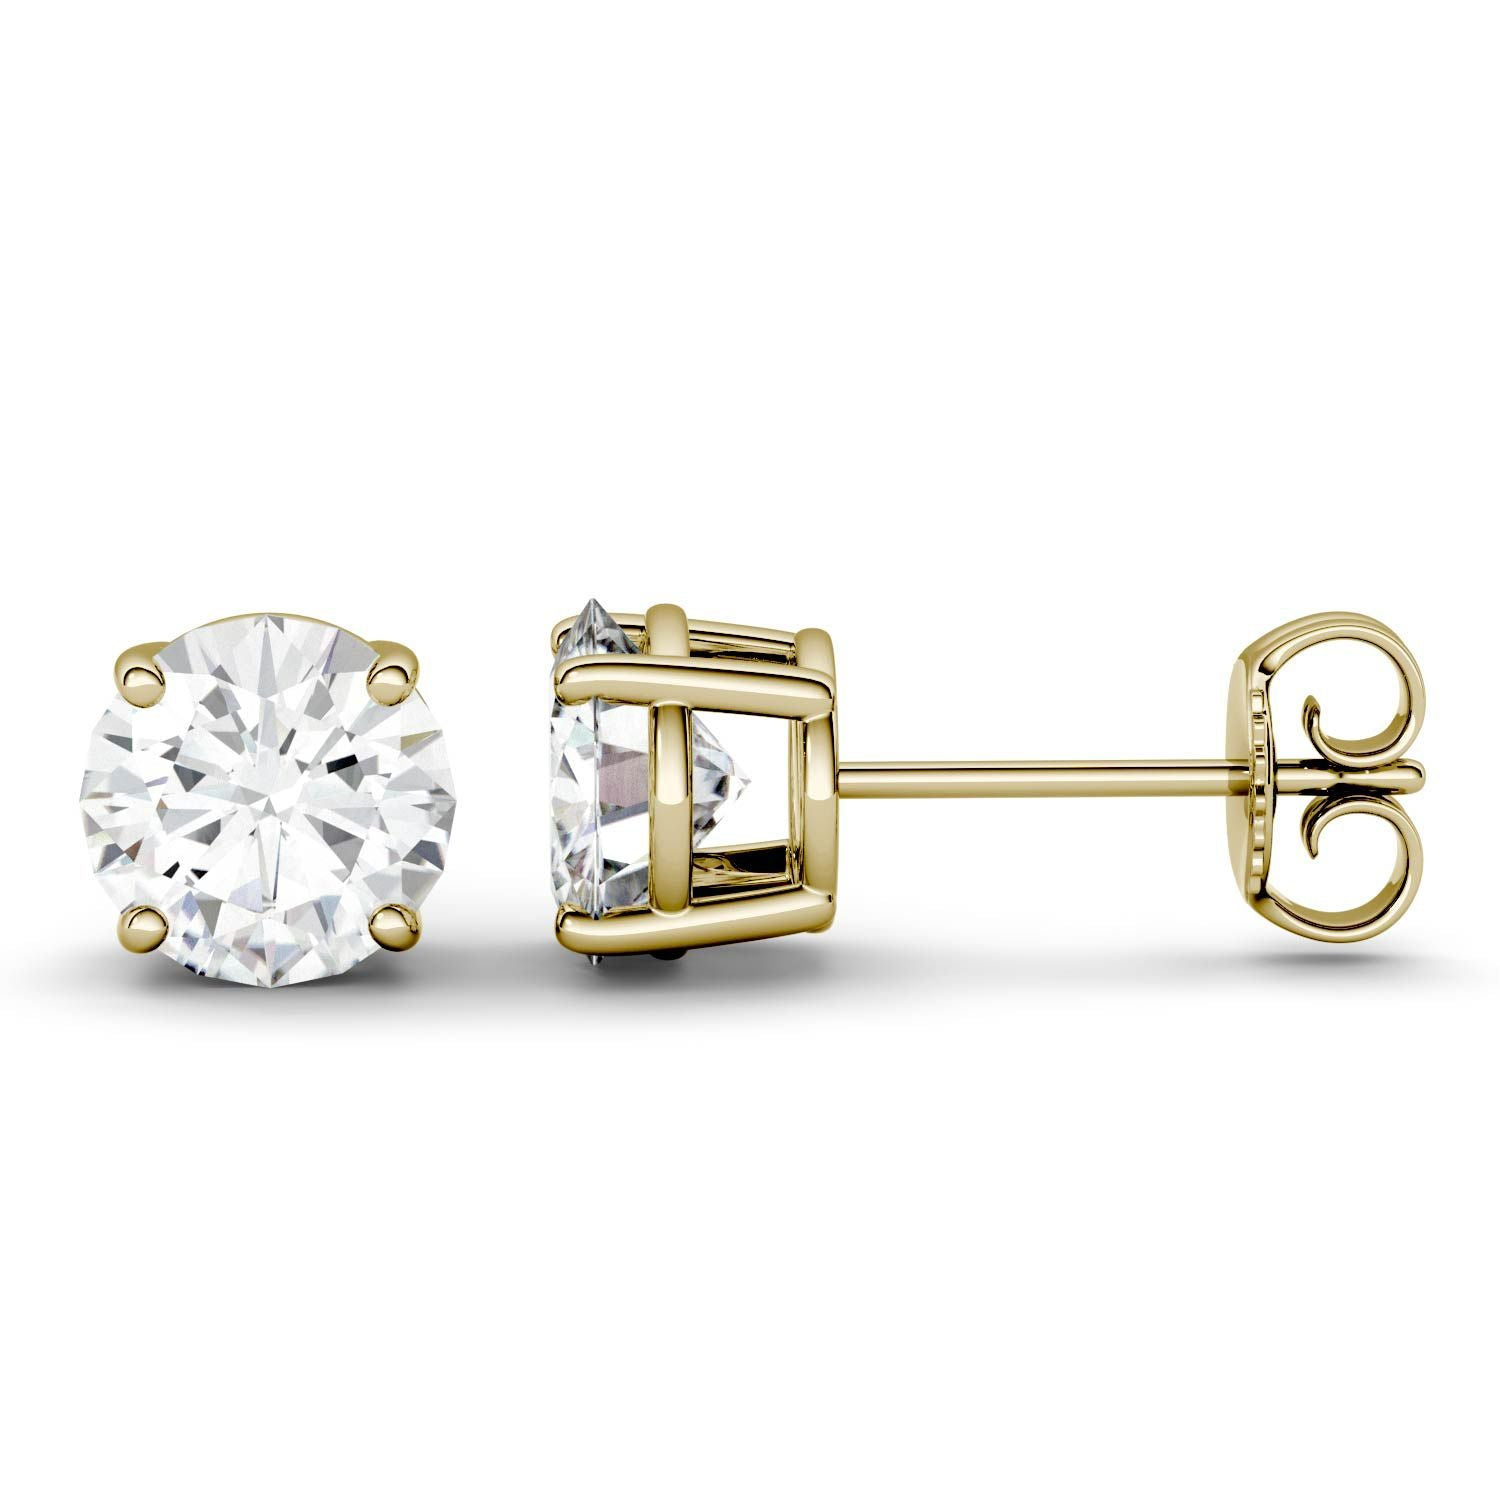 2 Carat TW Charles & Colvard Moissanite Stud Earrings in Yellow Gold-612703 - Jewelry by Johan